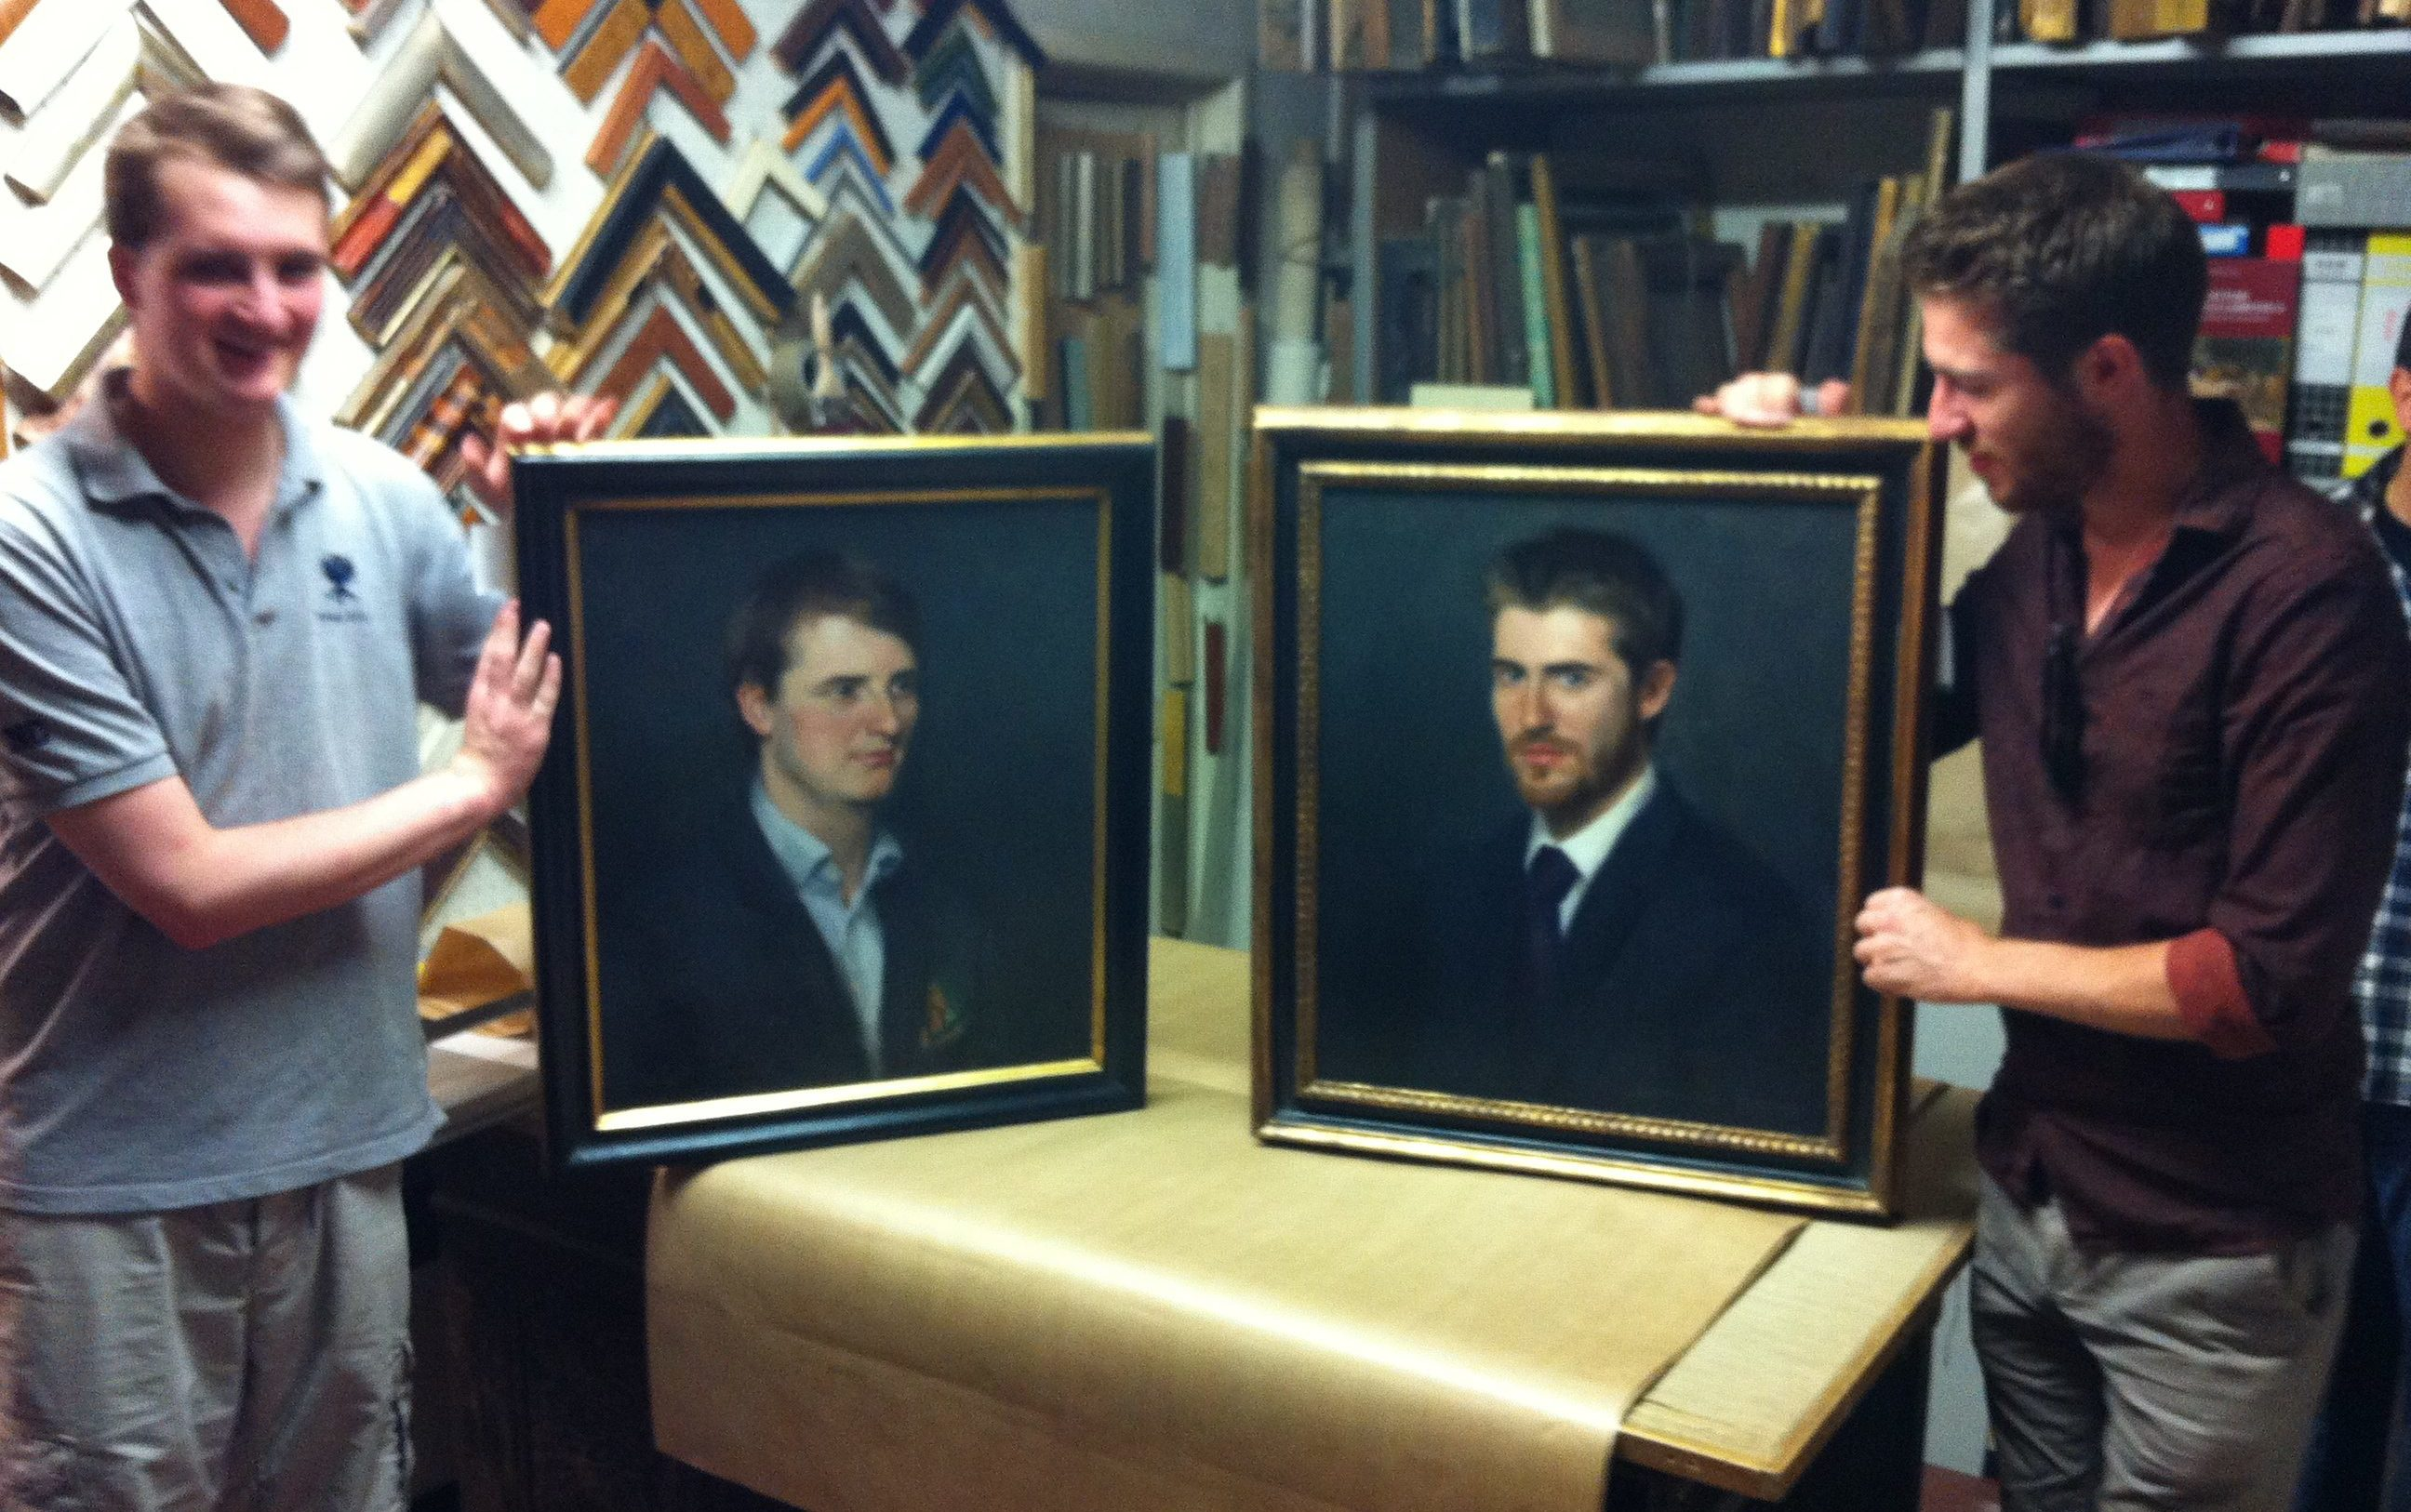 Framing of portraits, Thomas Henderson and Nick Chapmen